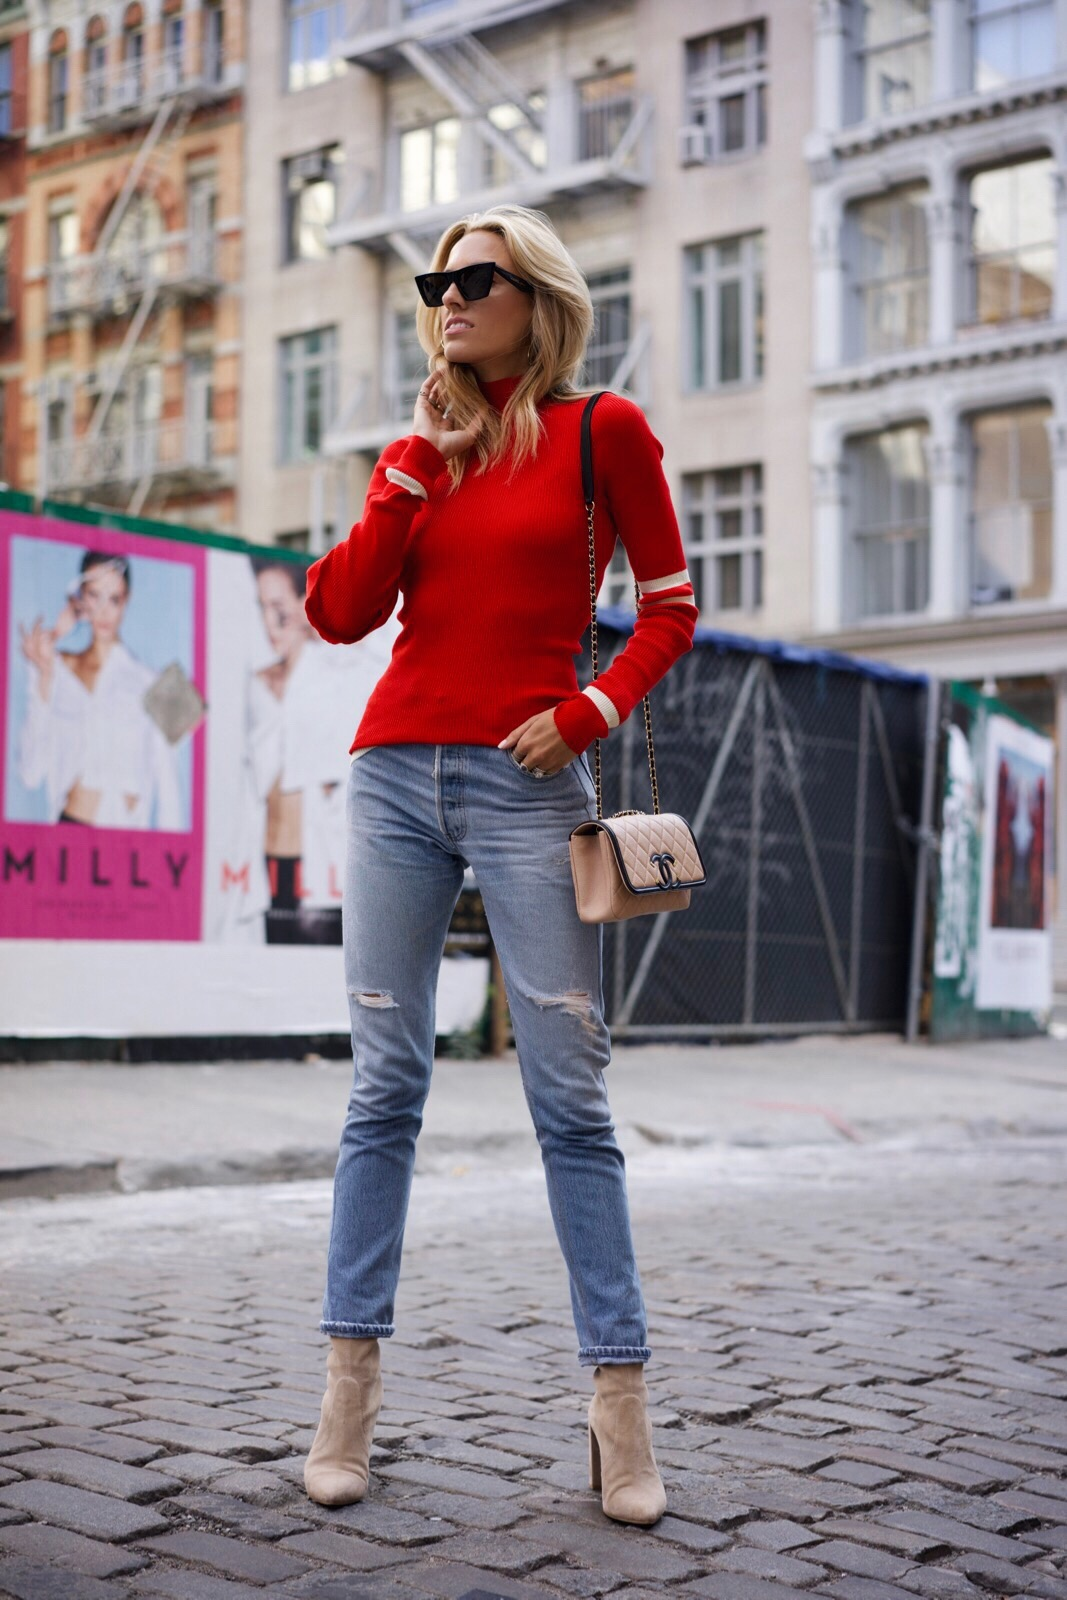 How to wear red, Fall must-haves, red knit, levis, Celine, Chanel